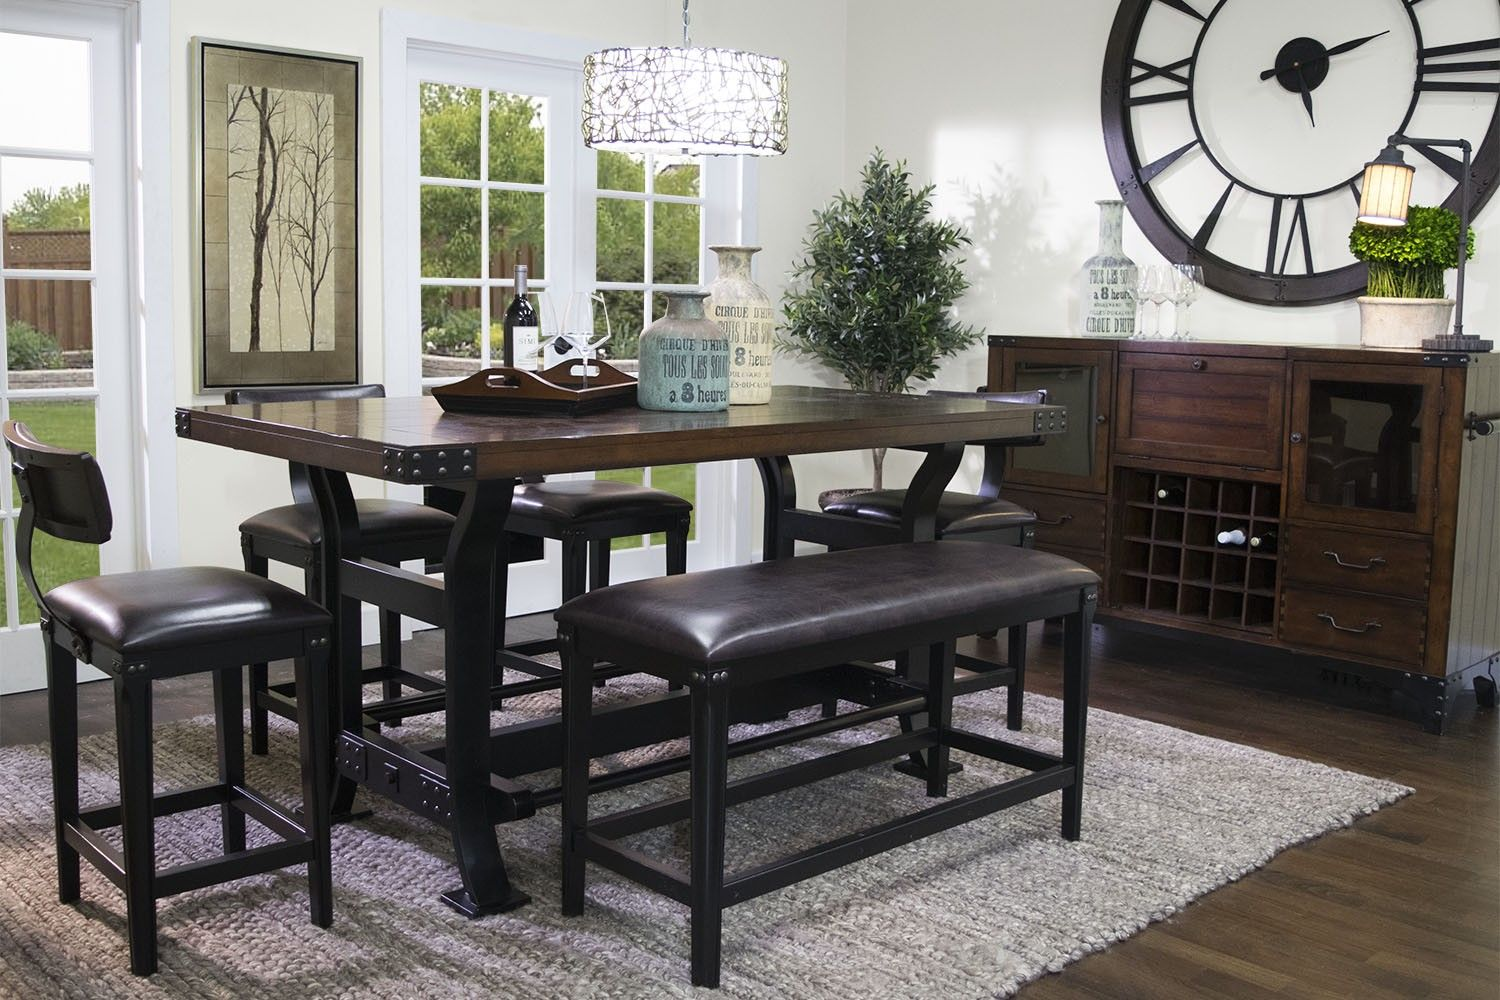 Mor Furniture For Less The Rustamod Sideboard  Mor Furniture For Gorgeous Height Dining Room Table Review